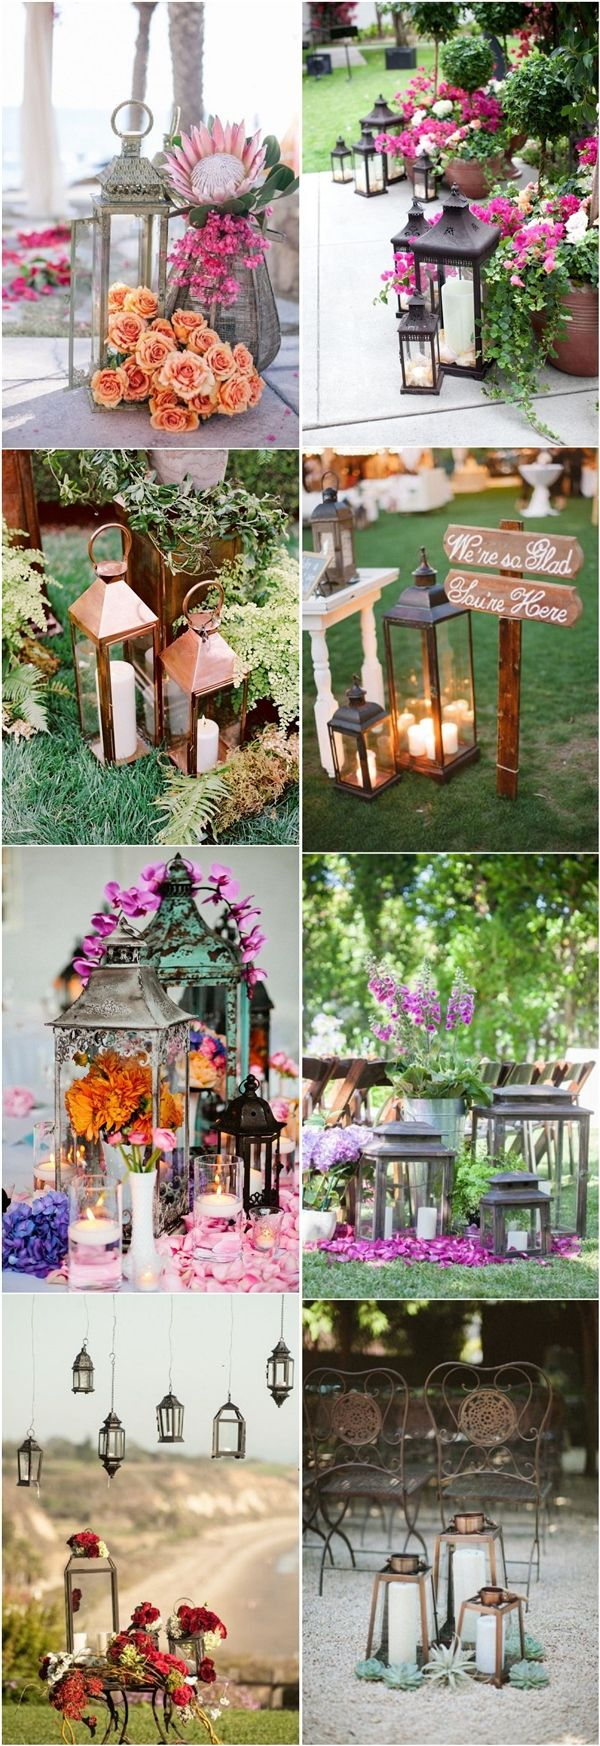 rustic outdoor wedding ideas- country lantern wedding decors